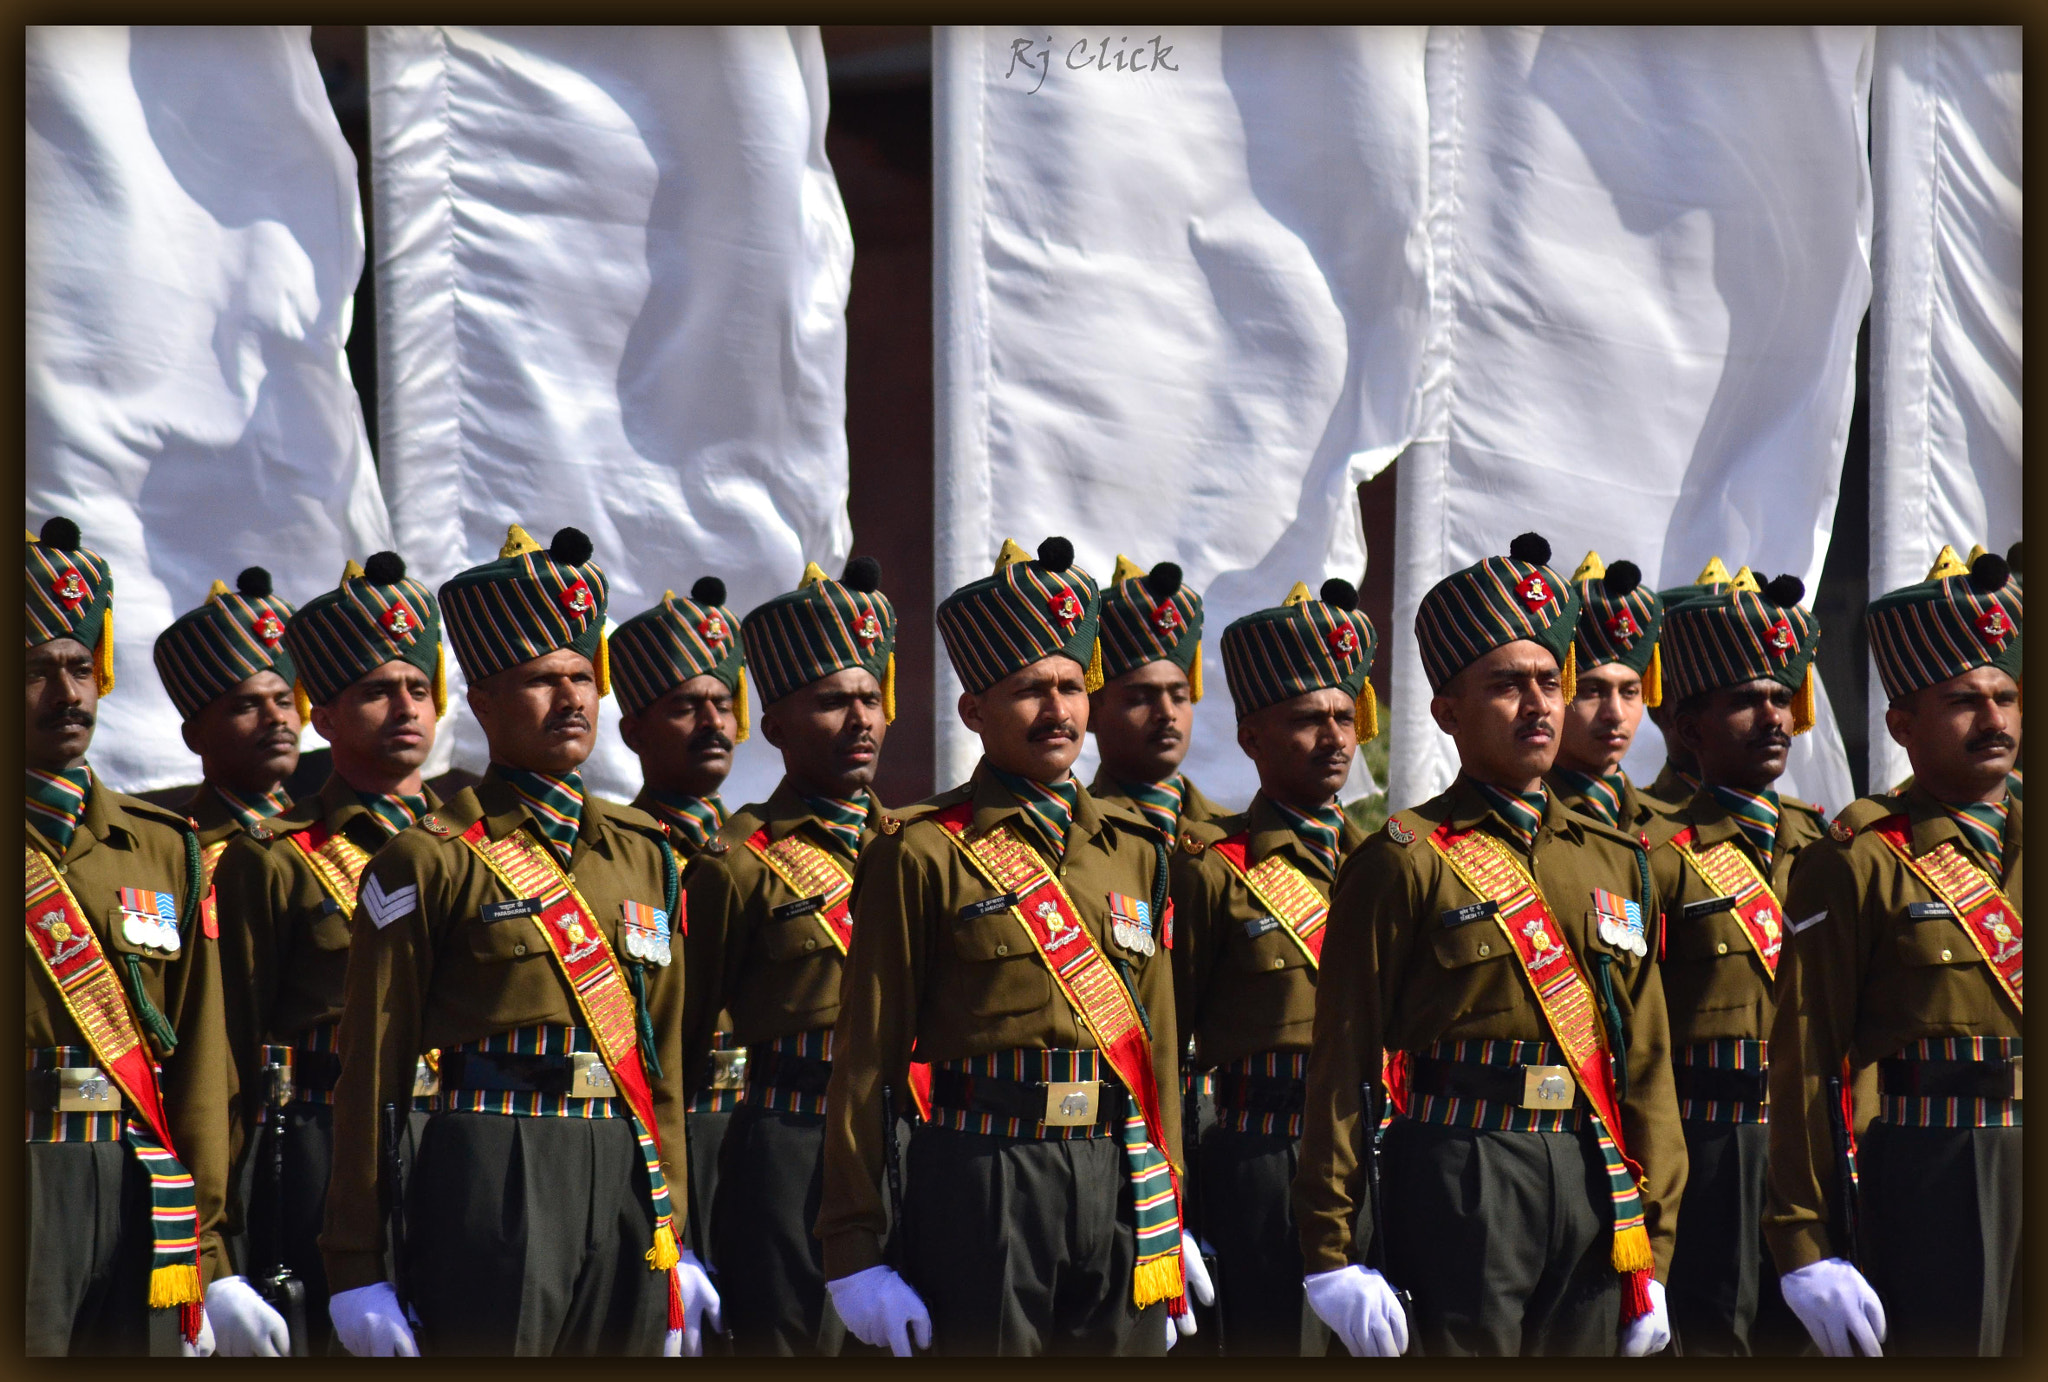 Photograph Soldiers  by Rahul Jain on 500px